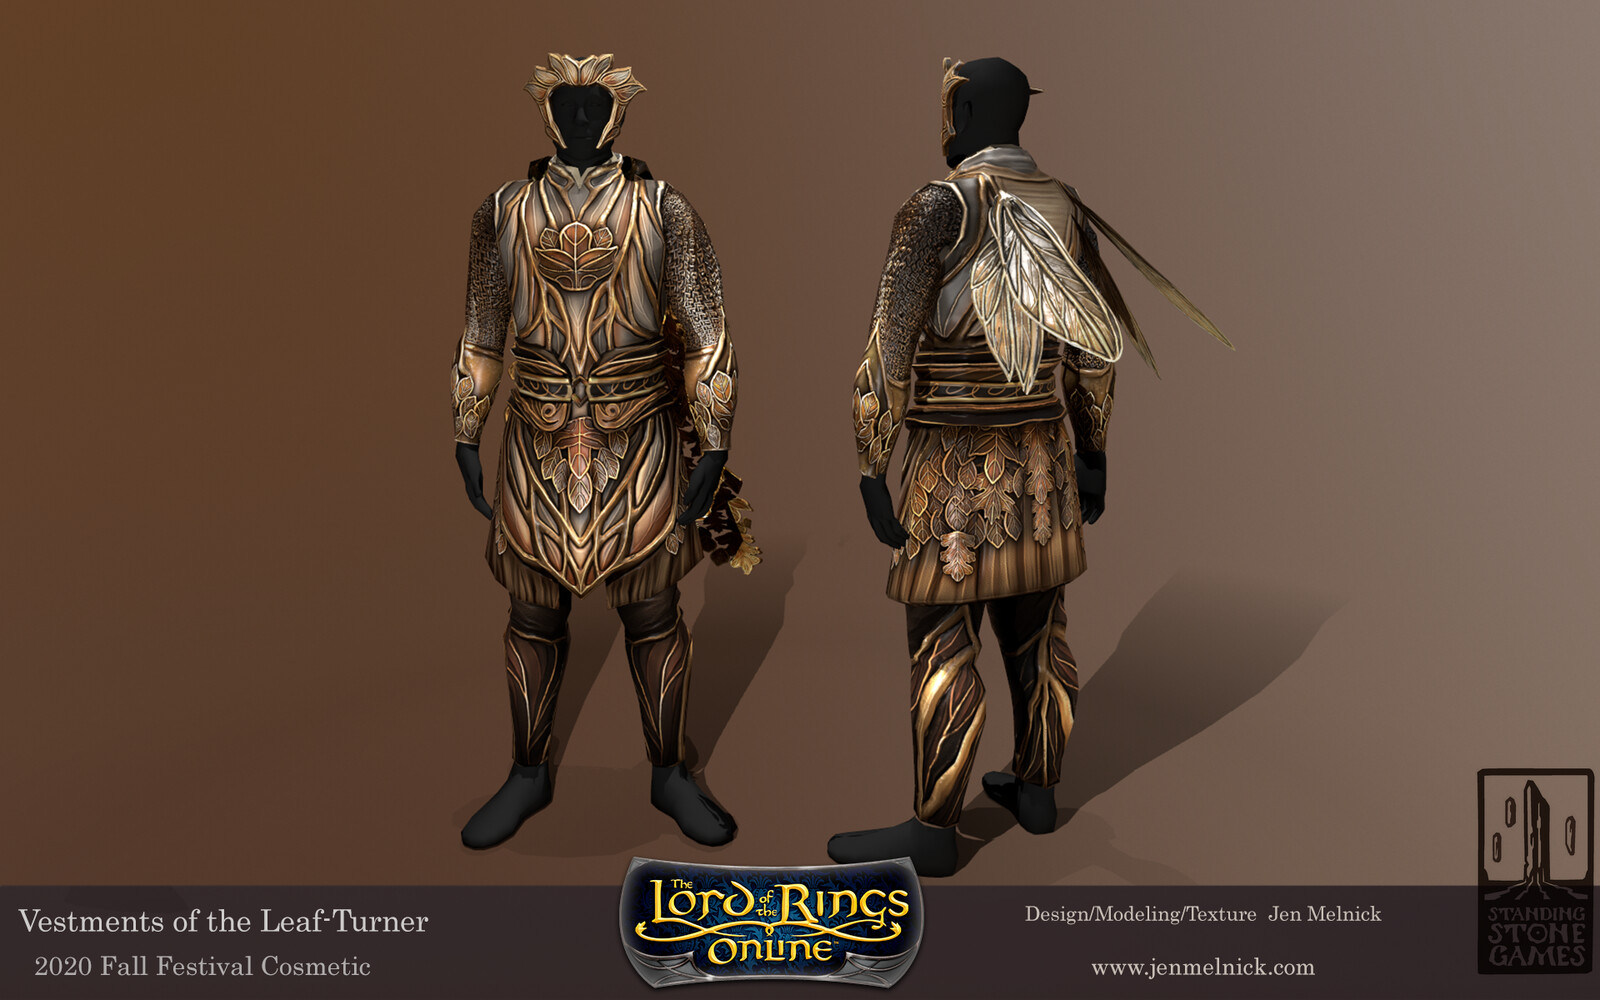 Lord of the Rings Online Vestments of the Leaf-Turner Tunic of the Leaf-Tuner, Mask of the Leaf-Turner, and Cosmetic Bee Wings Fall Festival 2020 Tunic and Mask are Dyeable  Alternate Fall Festival Chest piece and Helmet